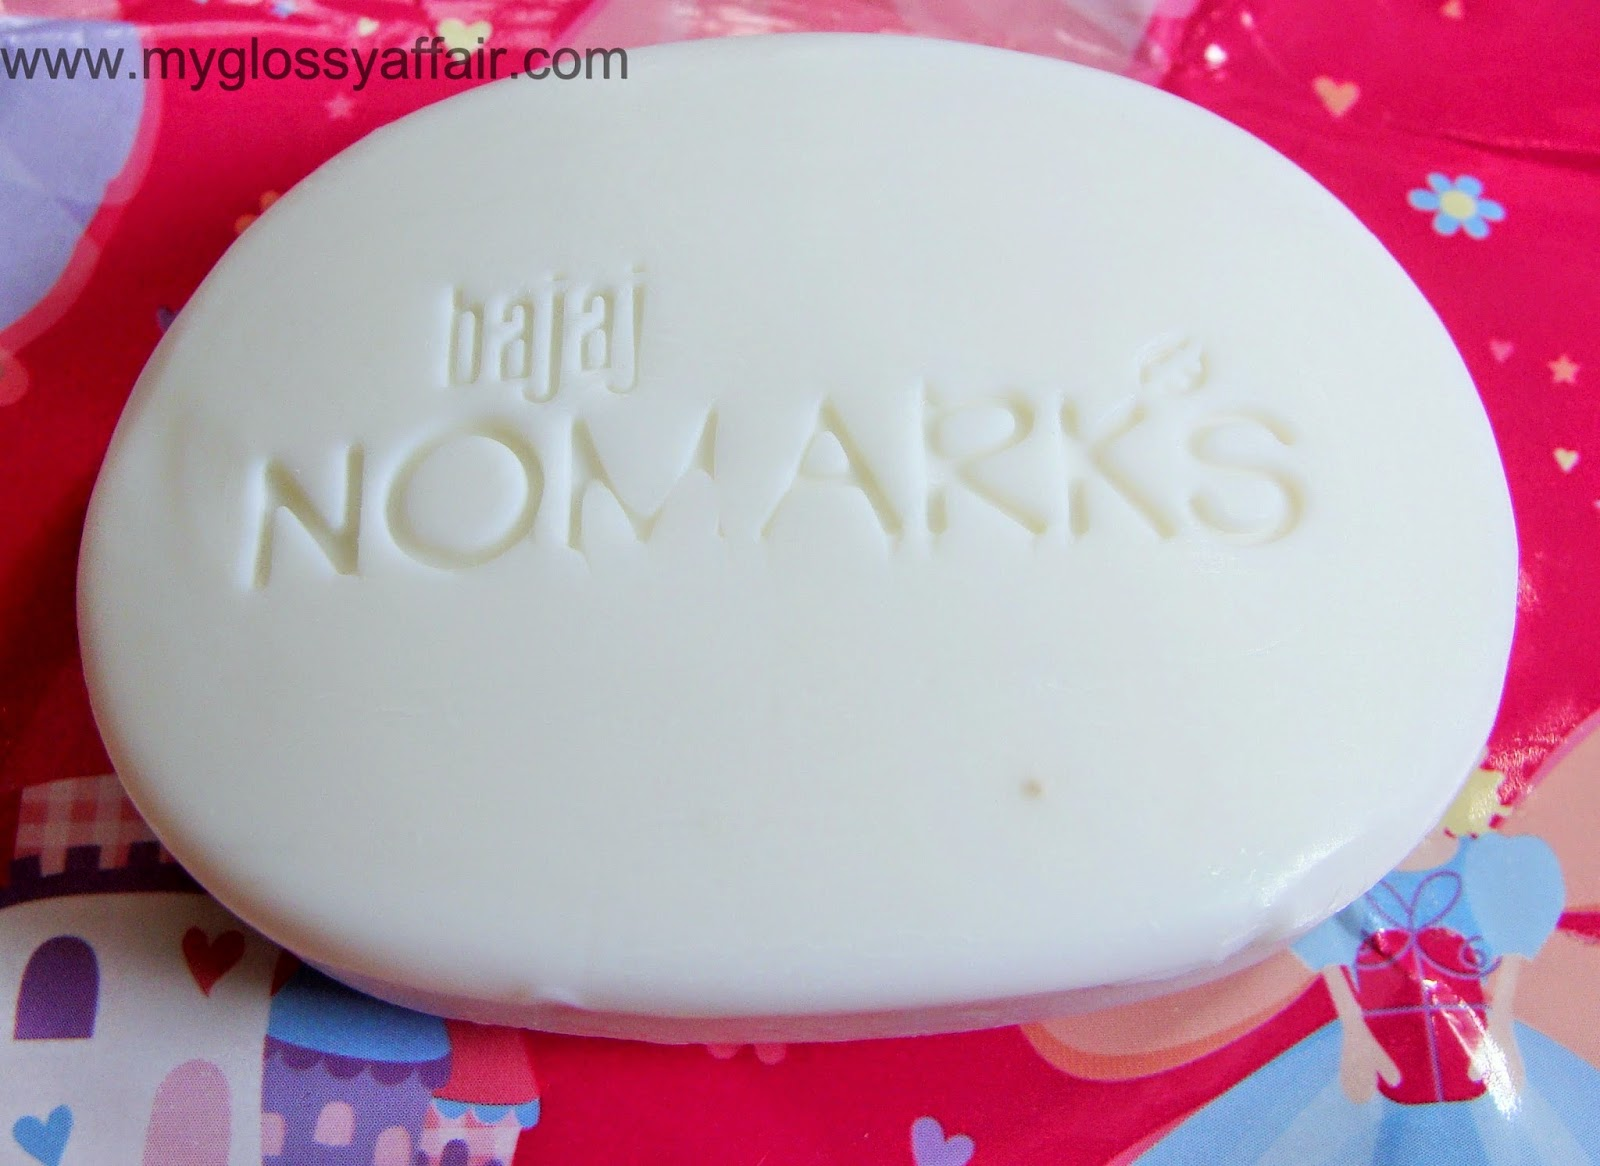 Bajaj NOMARKS Moisturising Soap Review